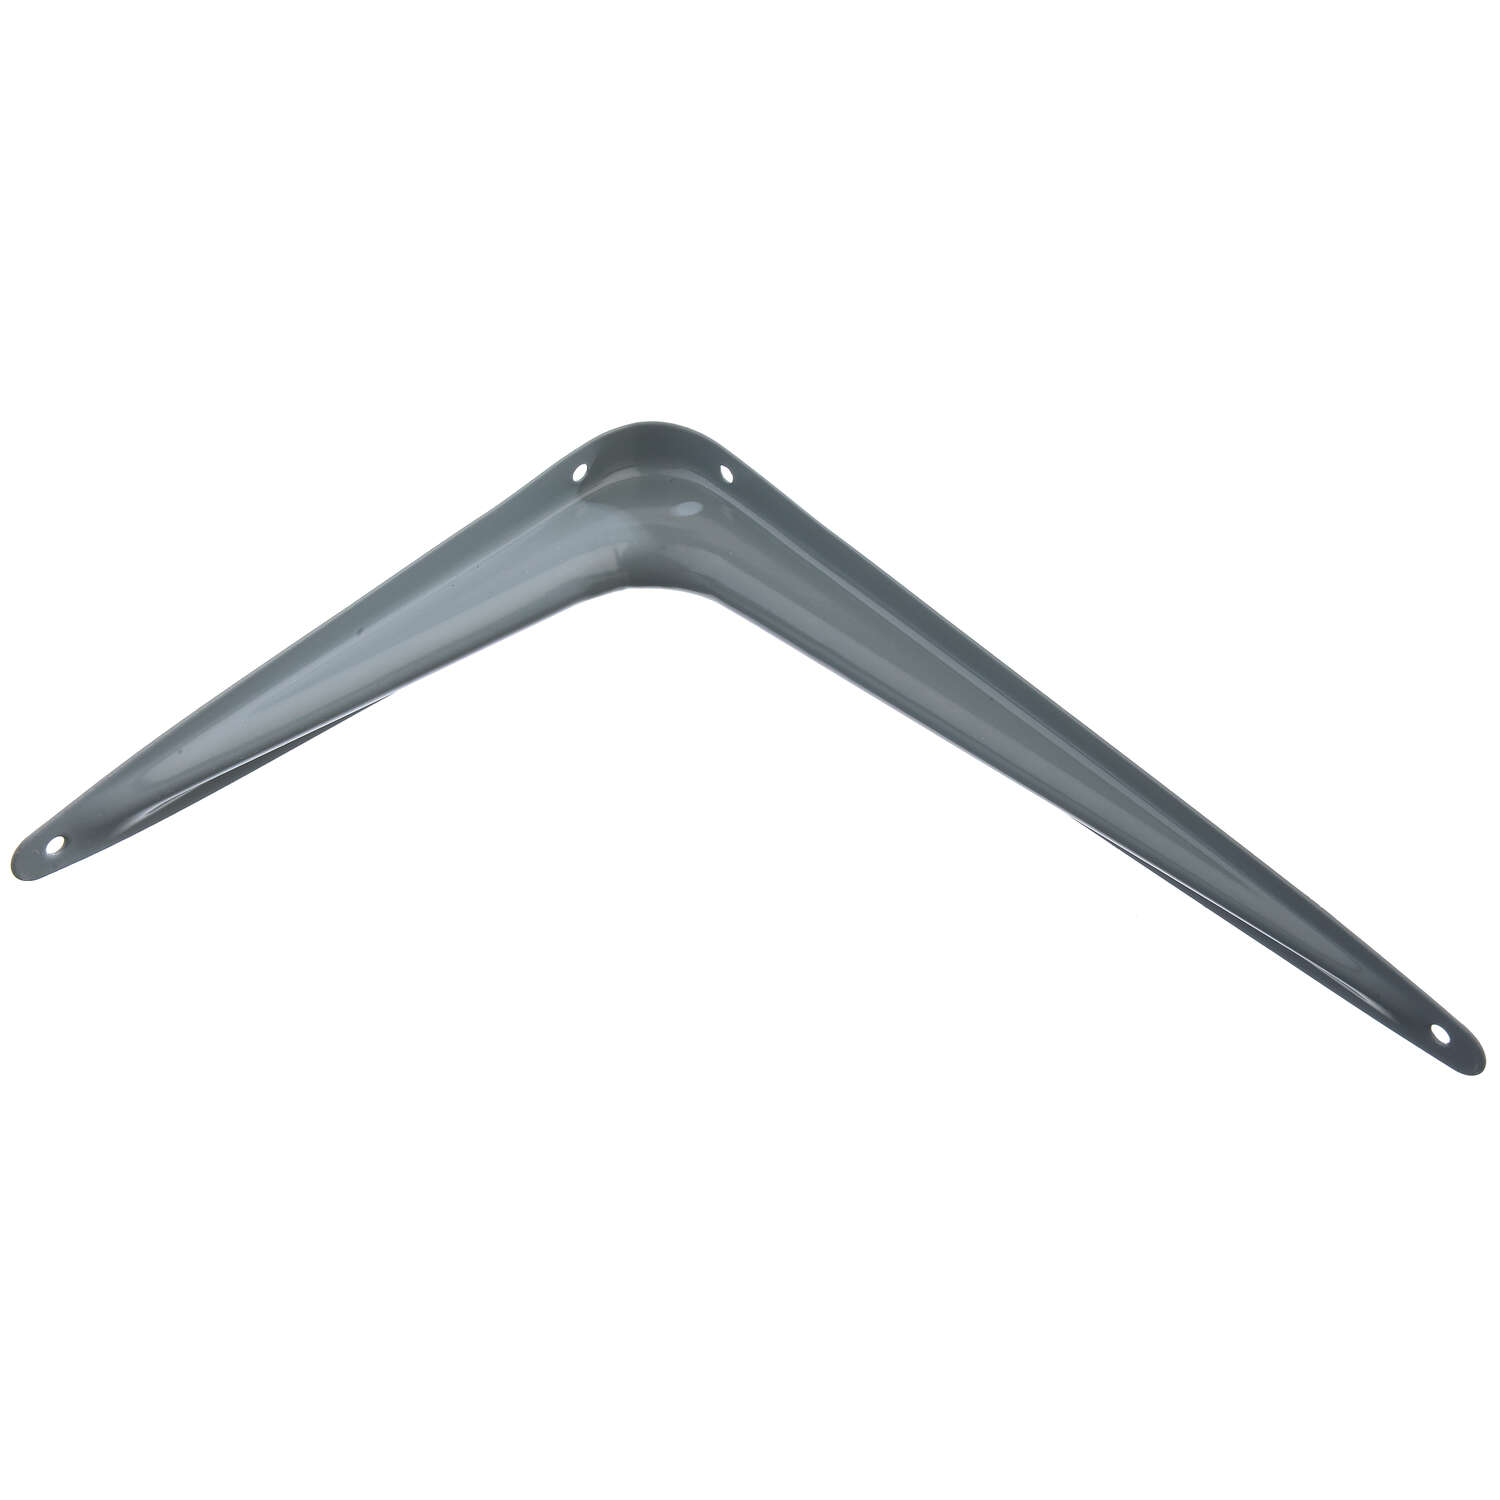 Ace  Gray  Steel  18 Ga. Shelf Support  10 in. H x 1-3/4 in. W x 8 in. L